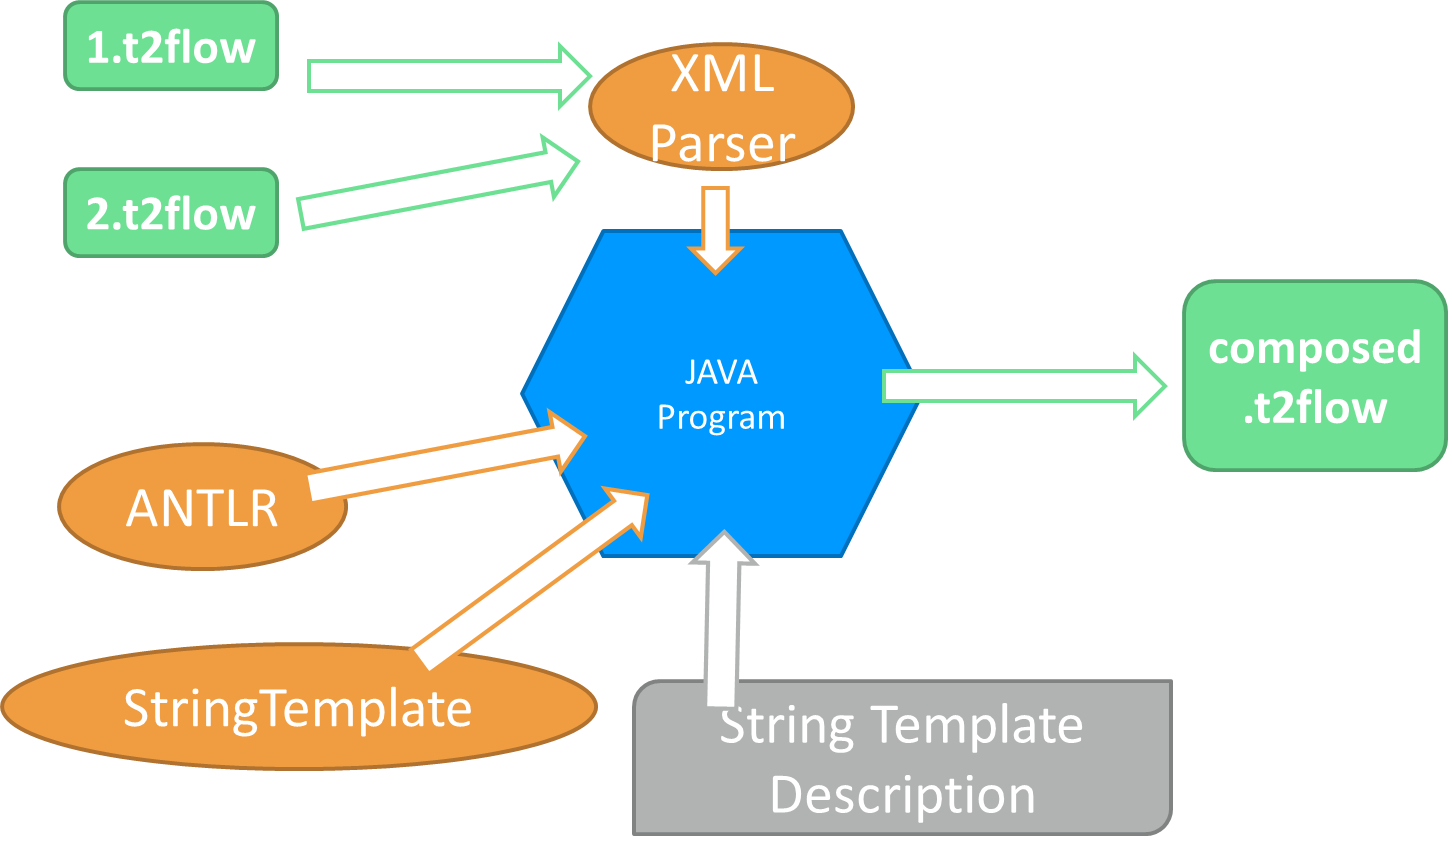 String Templates For Taverna T2flow Workflows Part 2 Adventures Circuit Diagram Xml Basically We Have To Write A Java Program That Imports Antlr And Stringtemplate Libraries Interprets Template File The